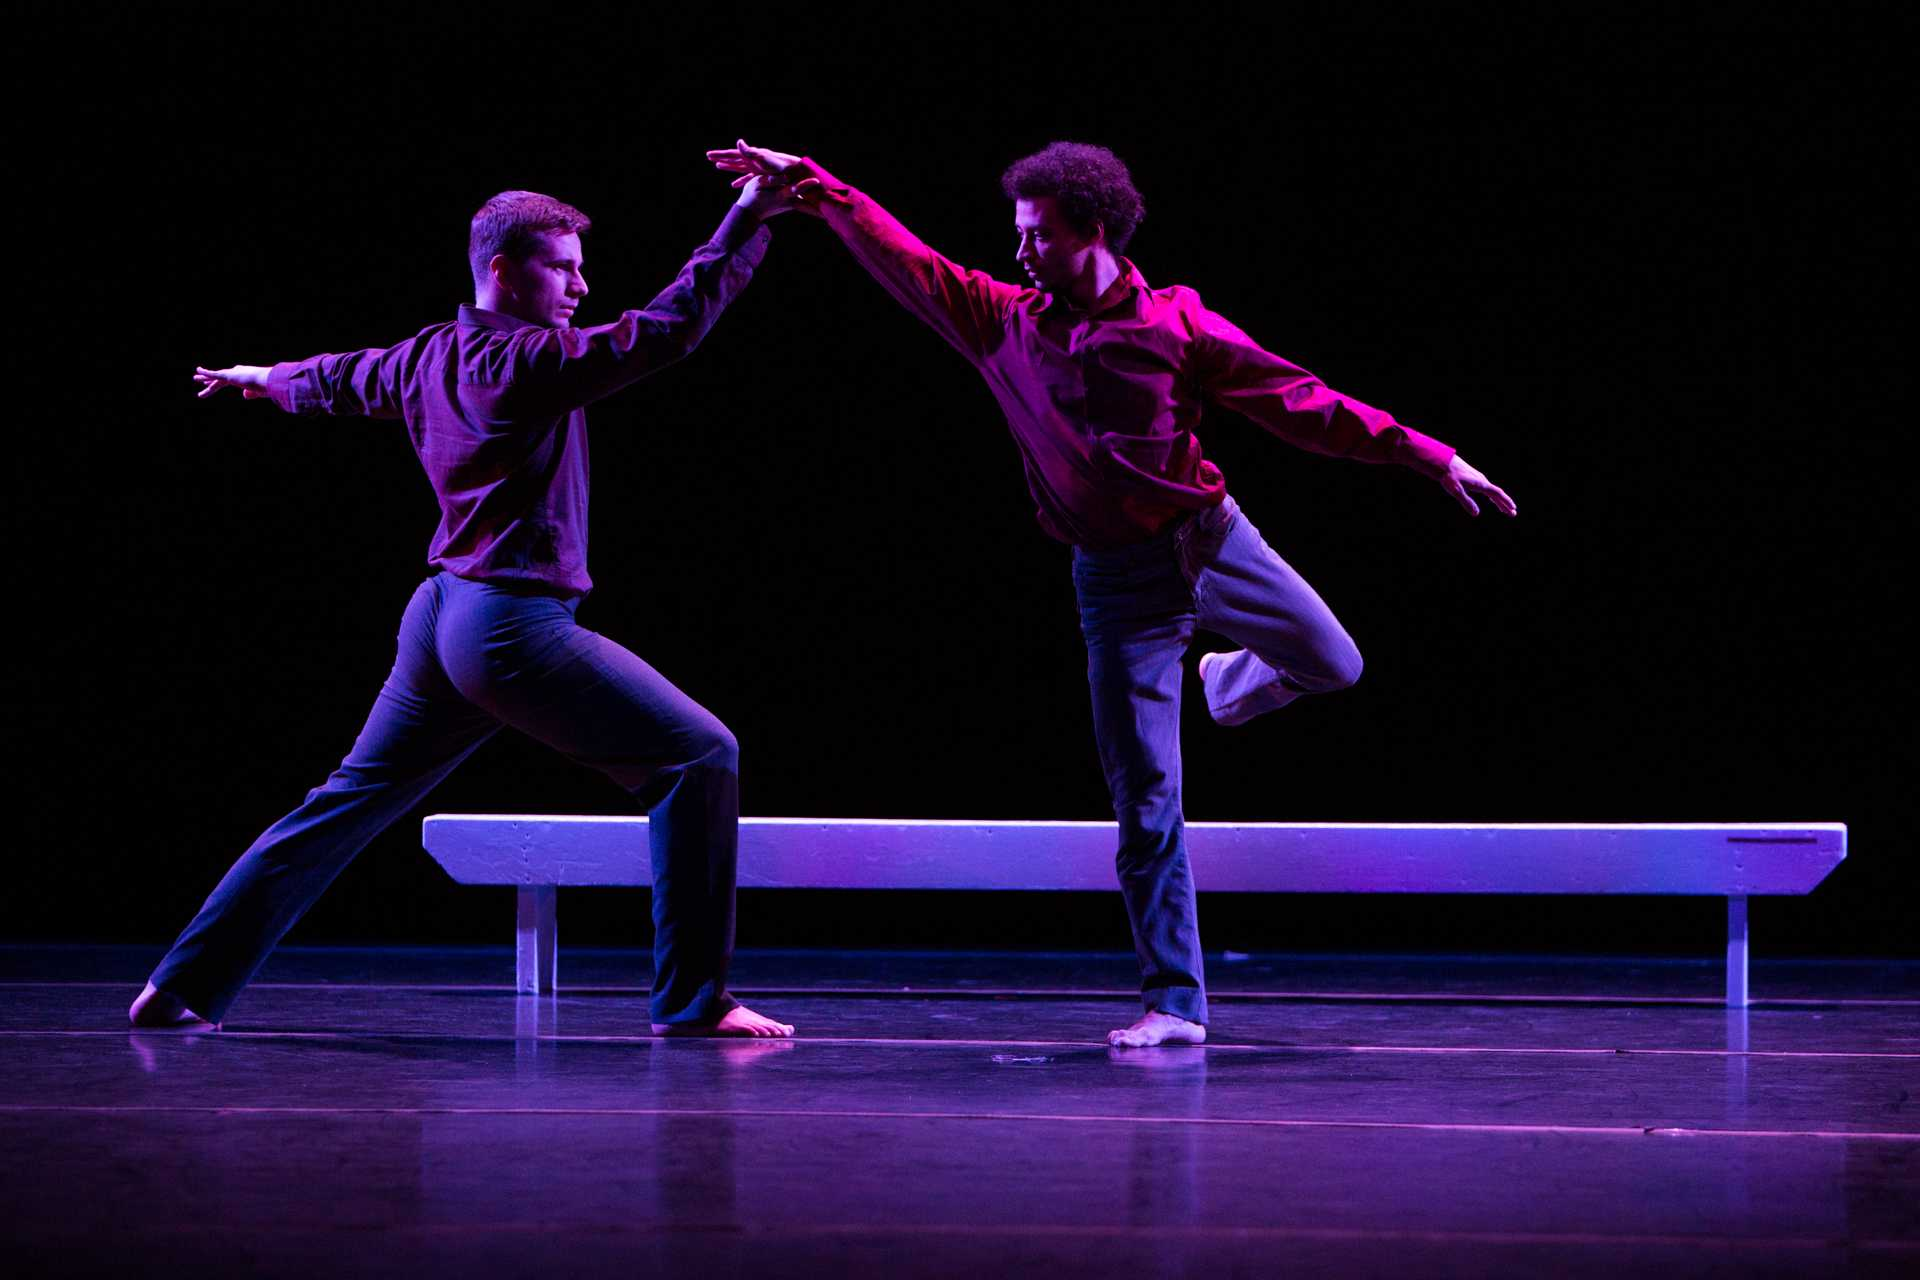 Undergraduate and Graduate students in the University of Iowa College of Dance perform in the Faculty/Graduate Concert dance performance at Space Place Theater on Wednesday, Feb. 7, 2018 (David Harmantas/The Daily Iowan)